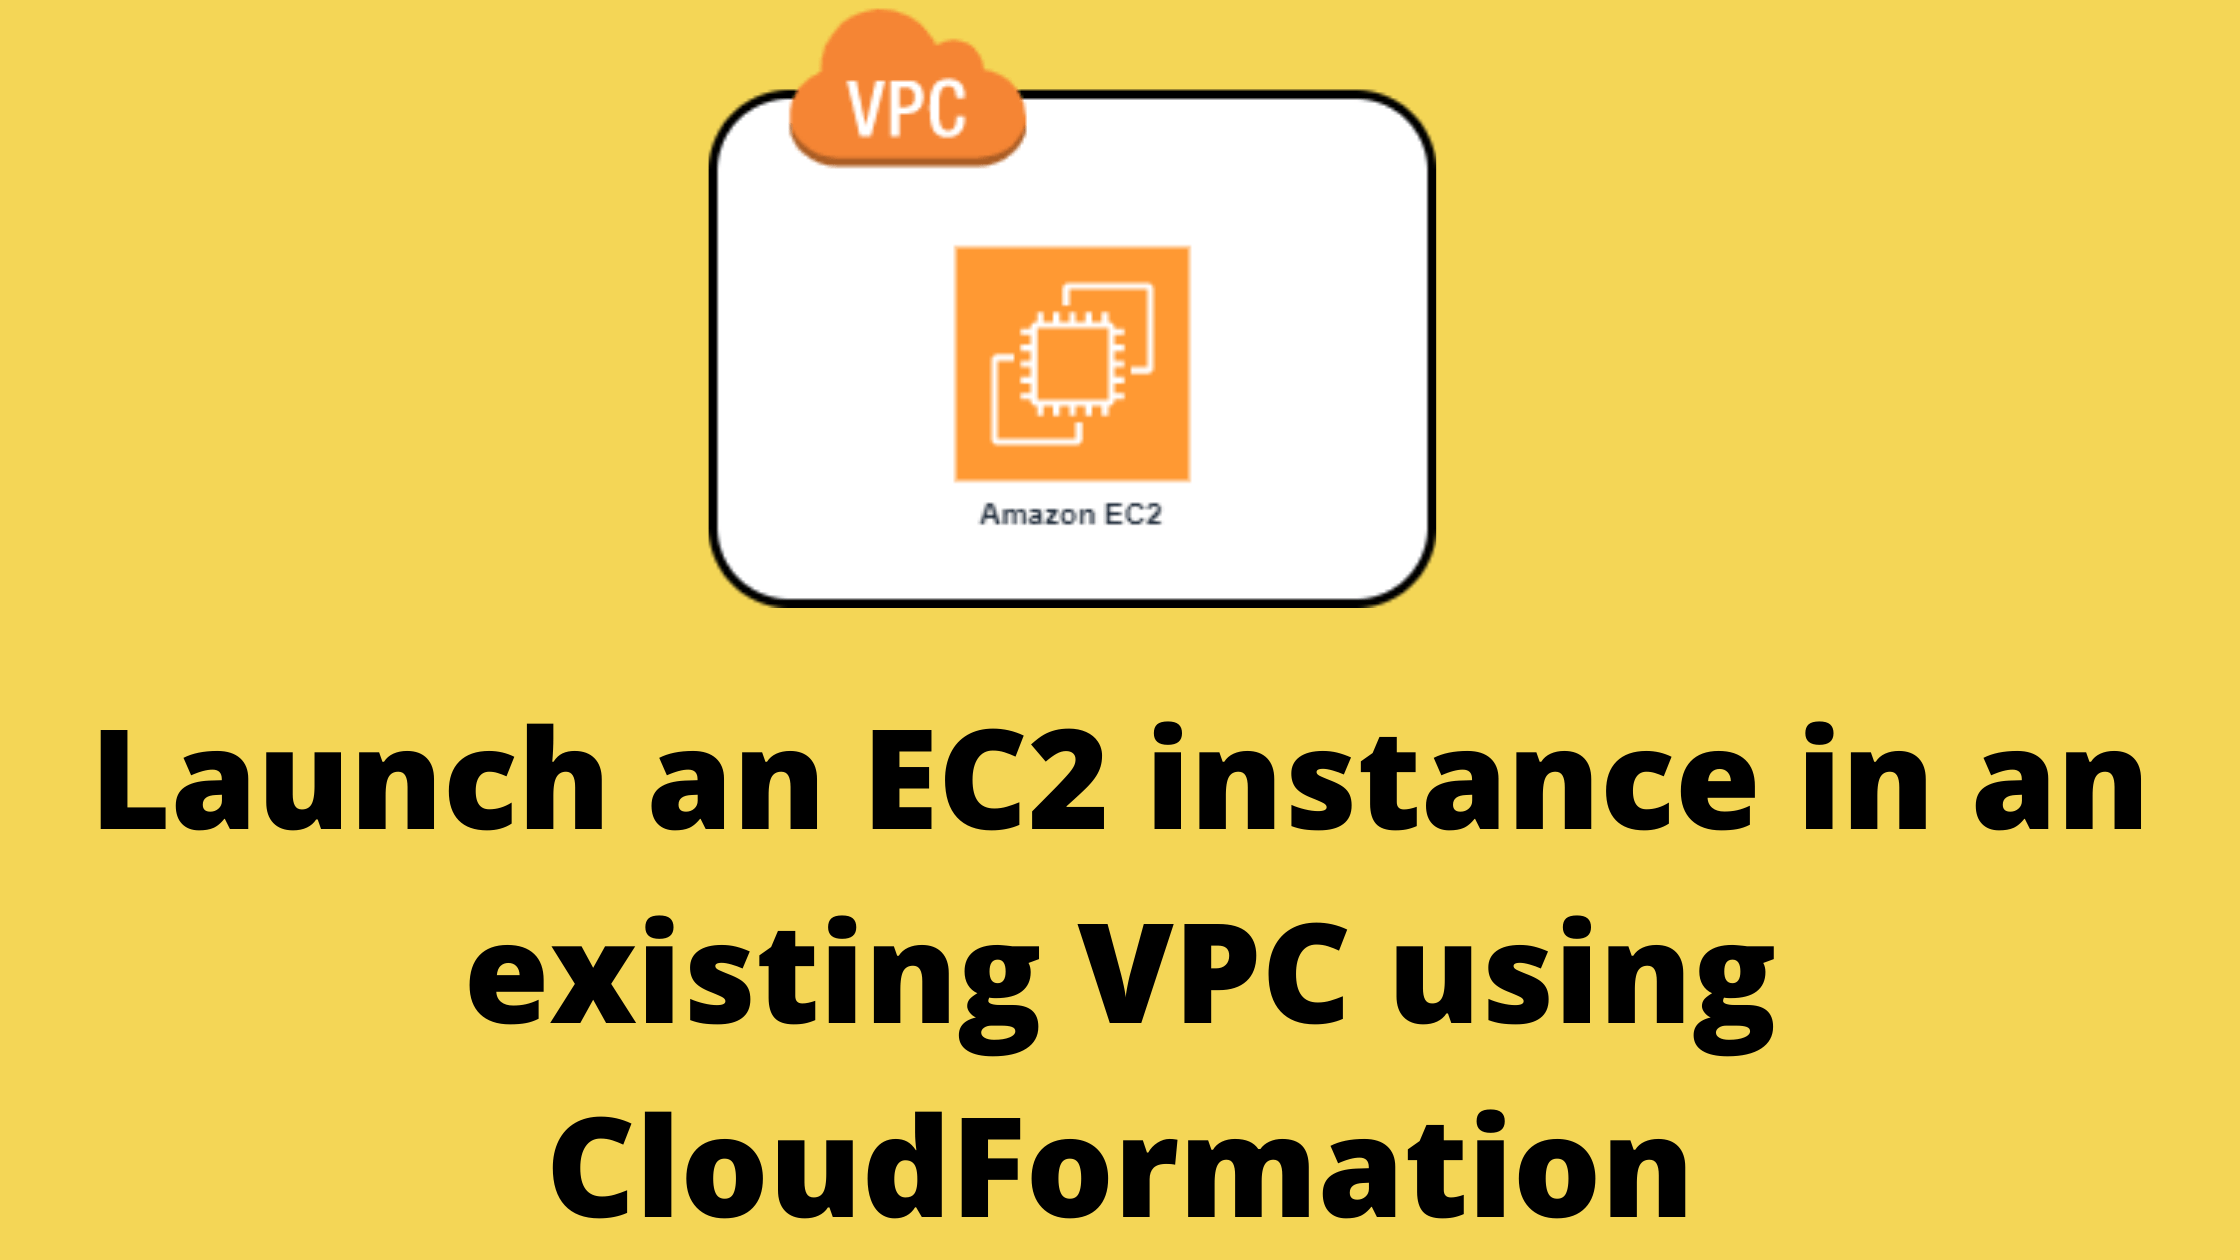 How to launch an EC2 instance in an existing VPC using CloudFormation